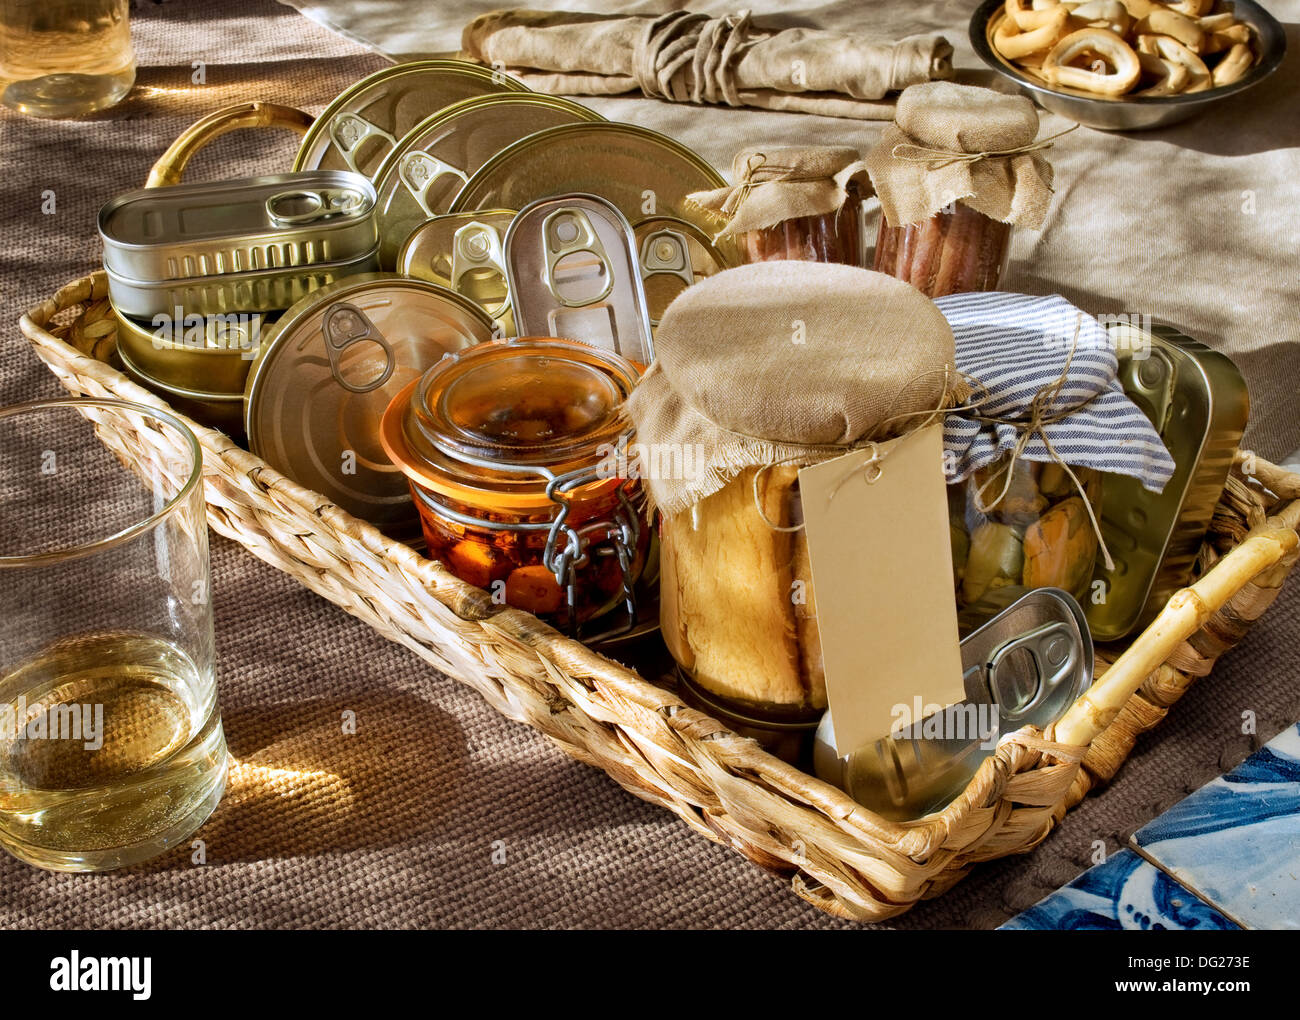 Fish cans and tuna, octopus, anchovies, mussels canned in glass - Stock Image